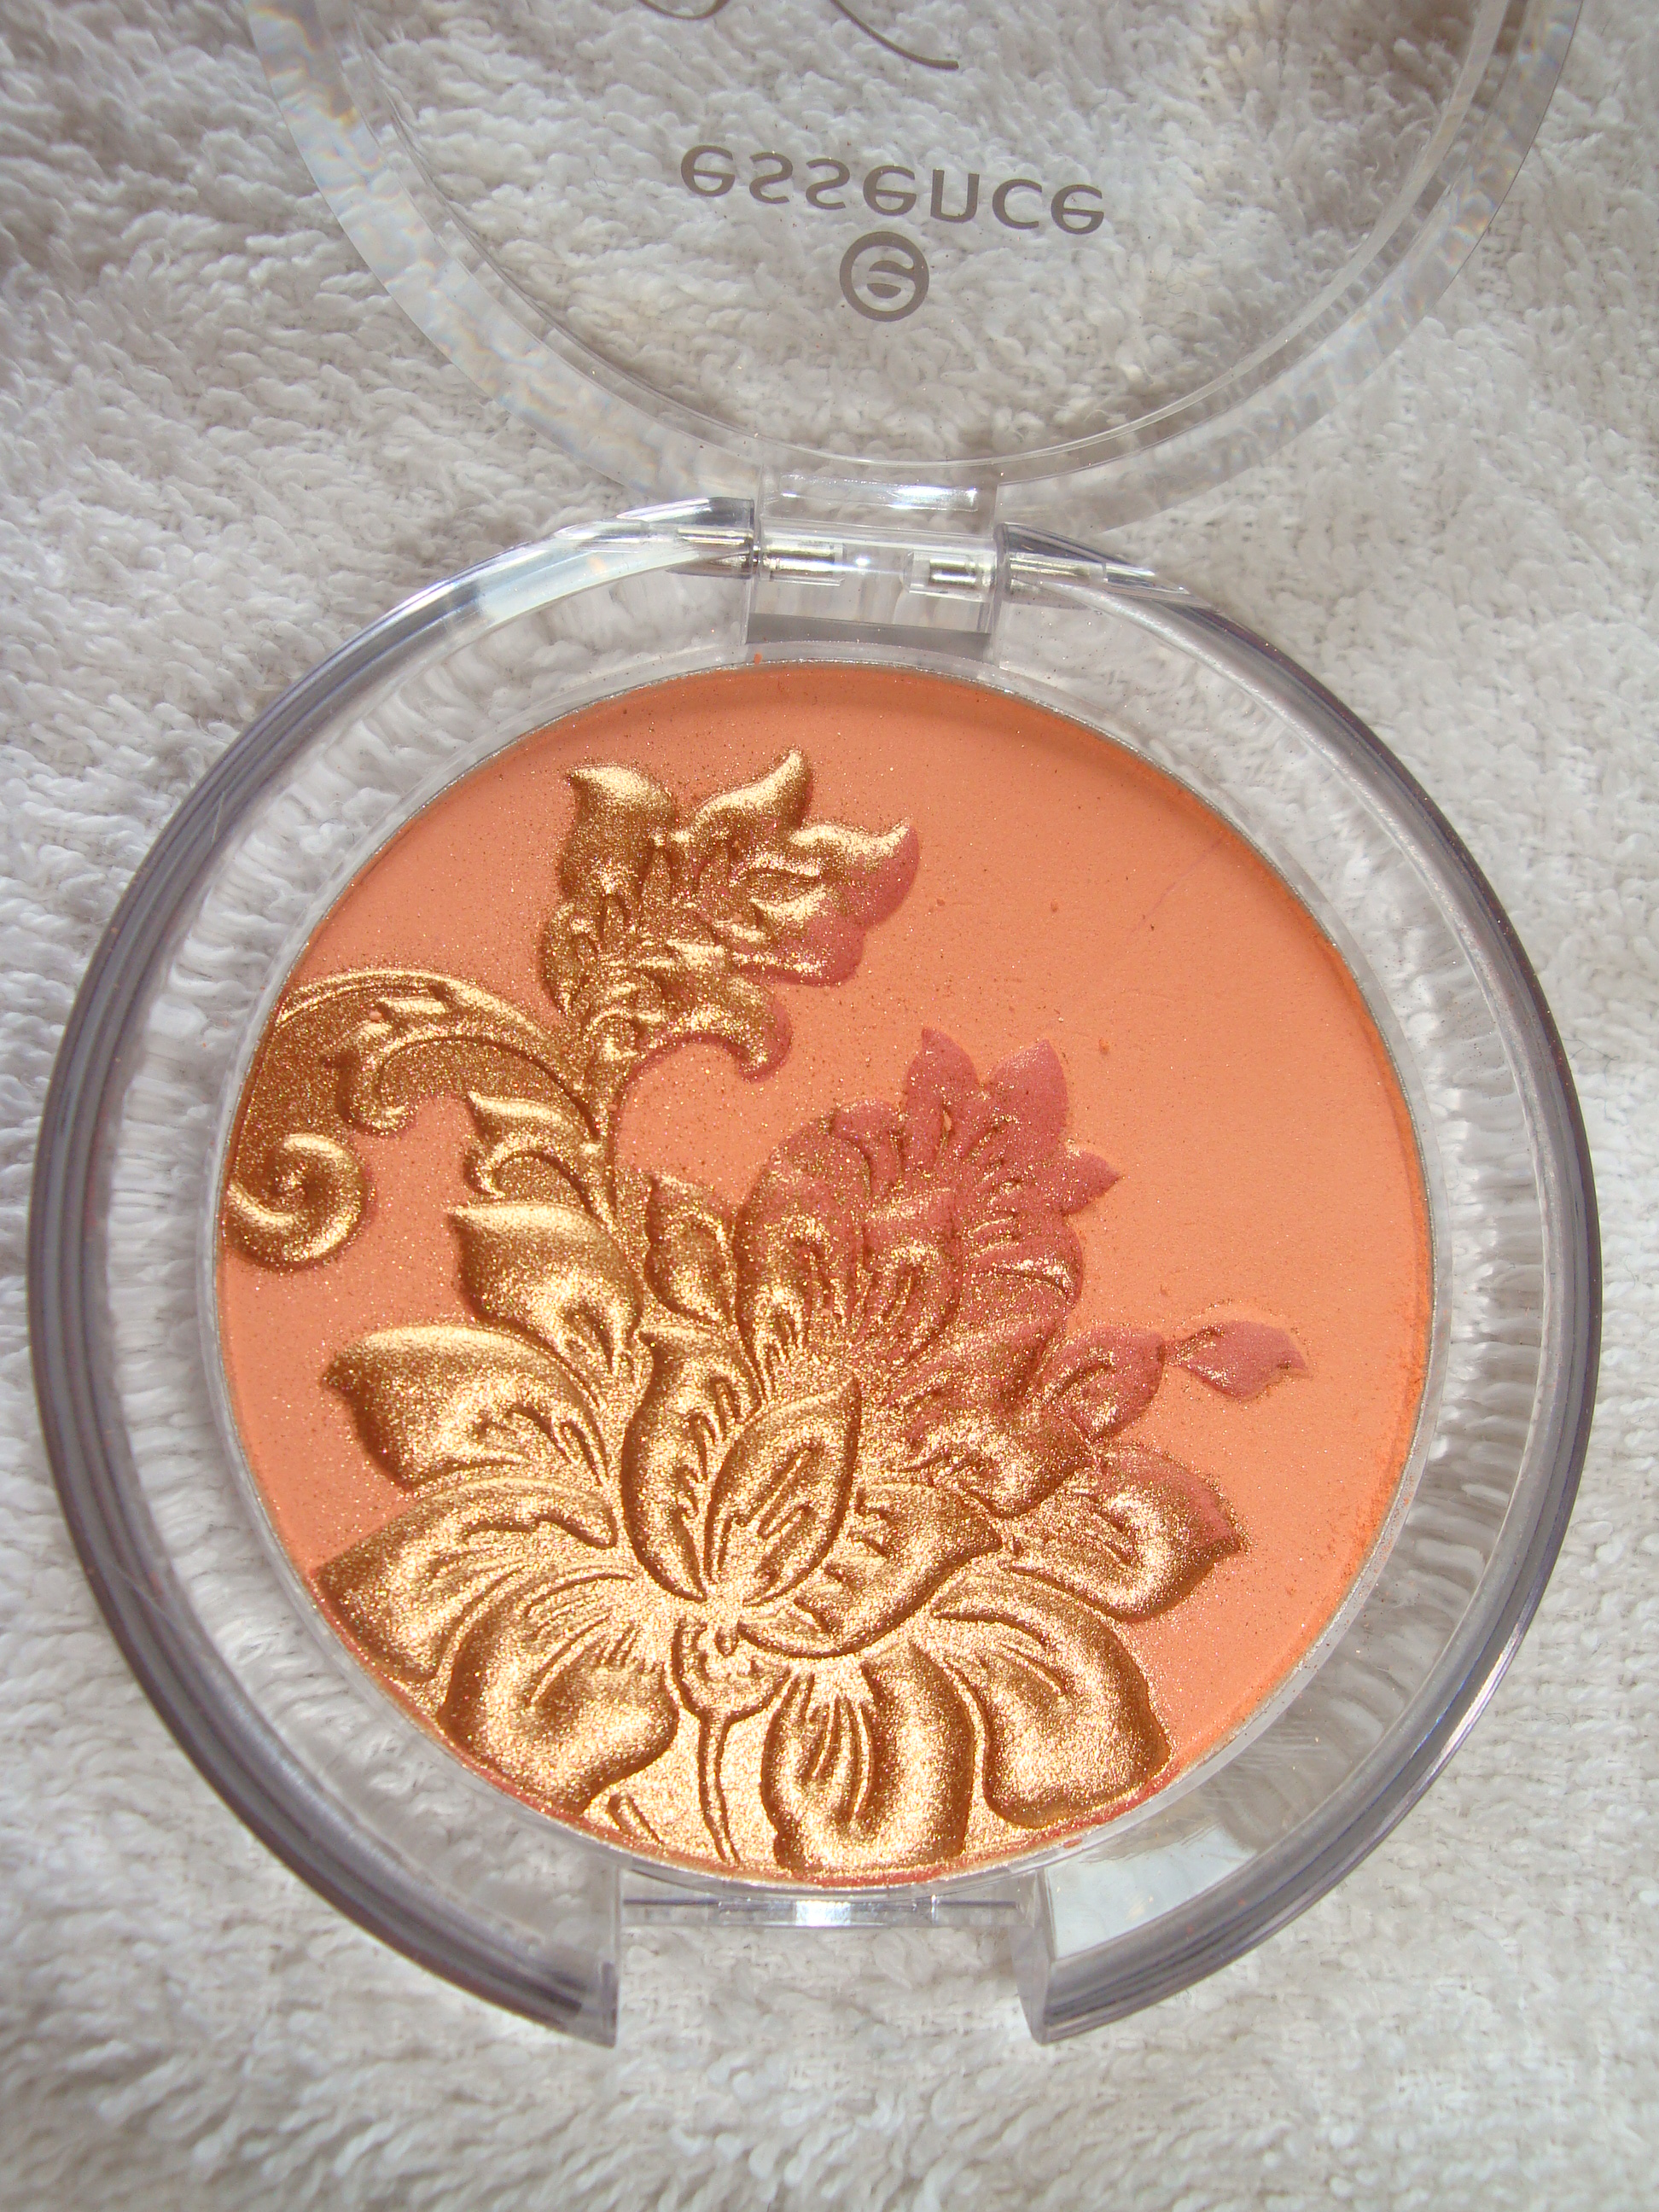 Essence Vintage district blush n. 01 It's popul-art.